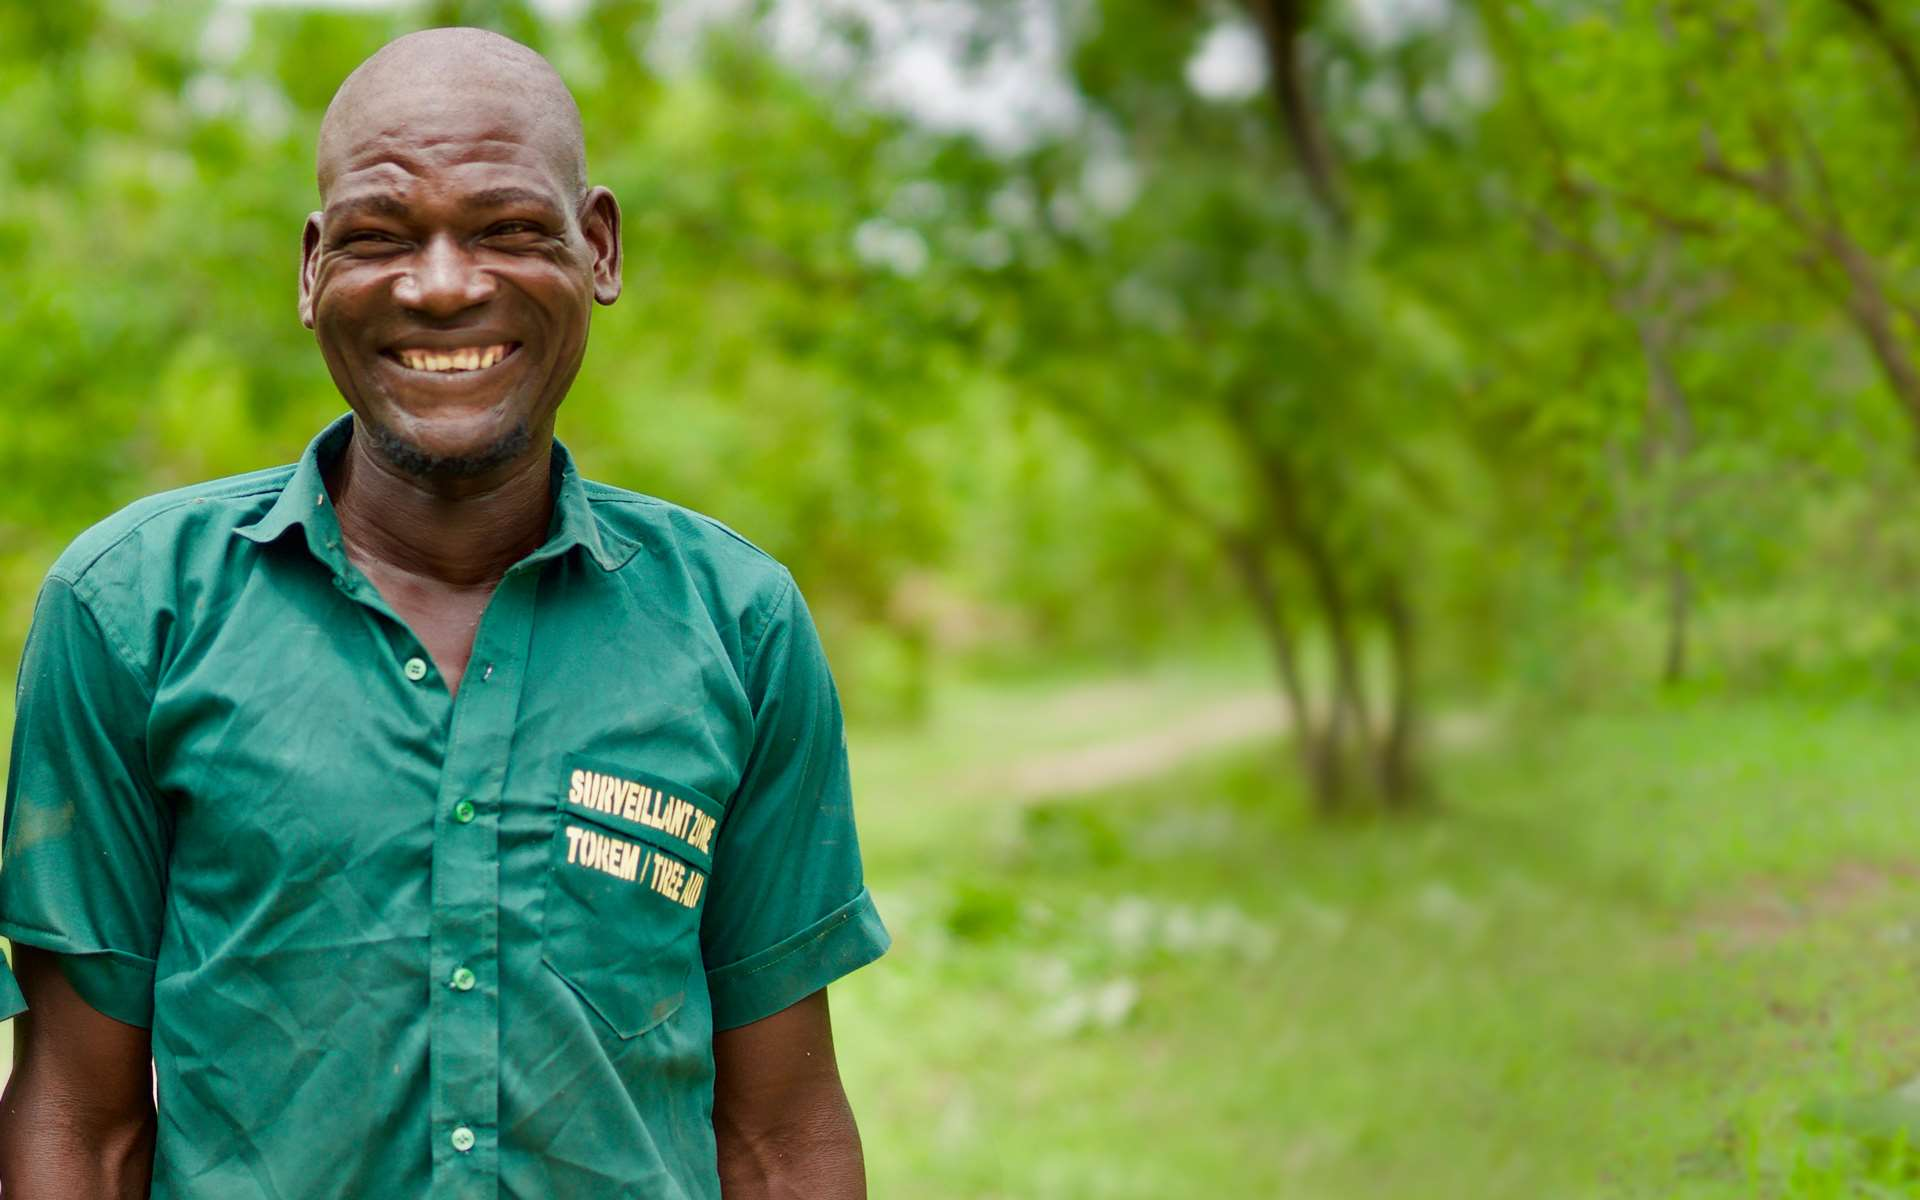 Mouni, a volunteer forest guard, smiling in front of his local forest.